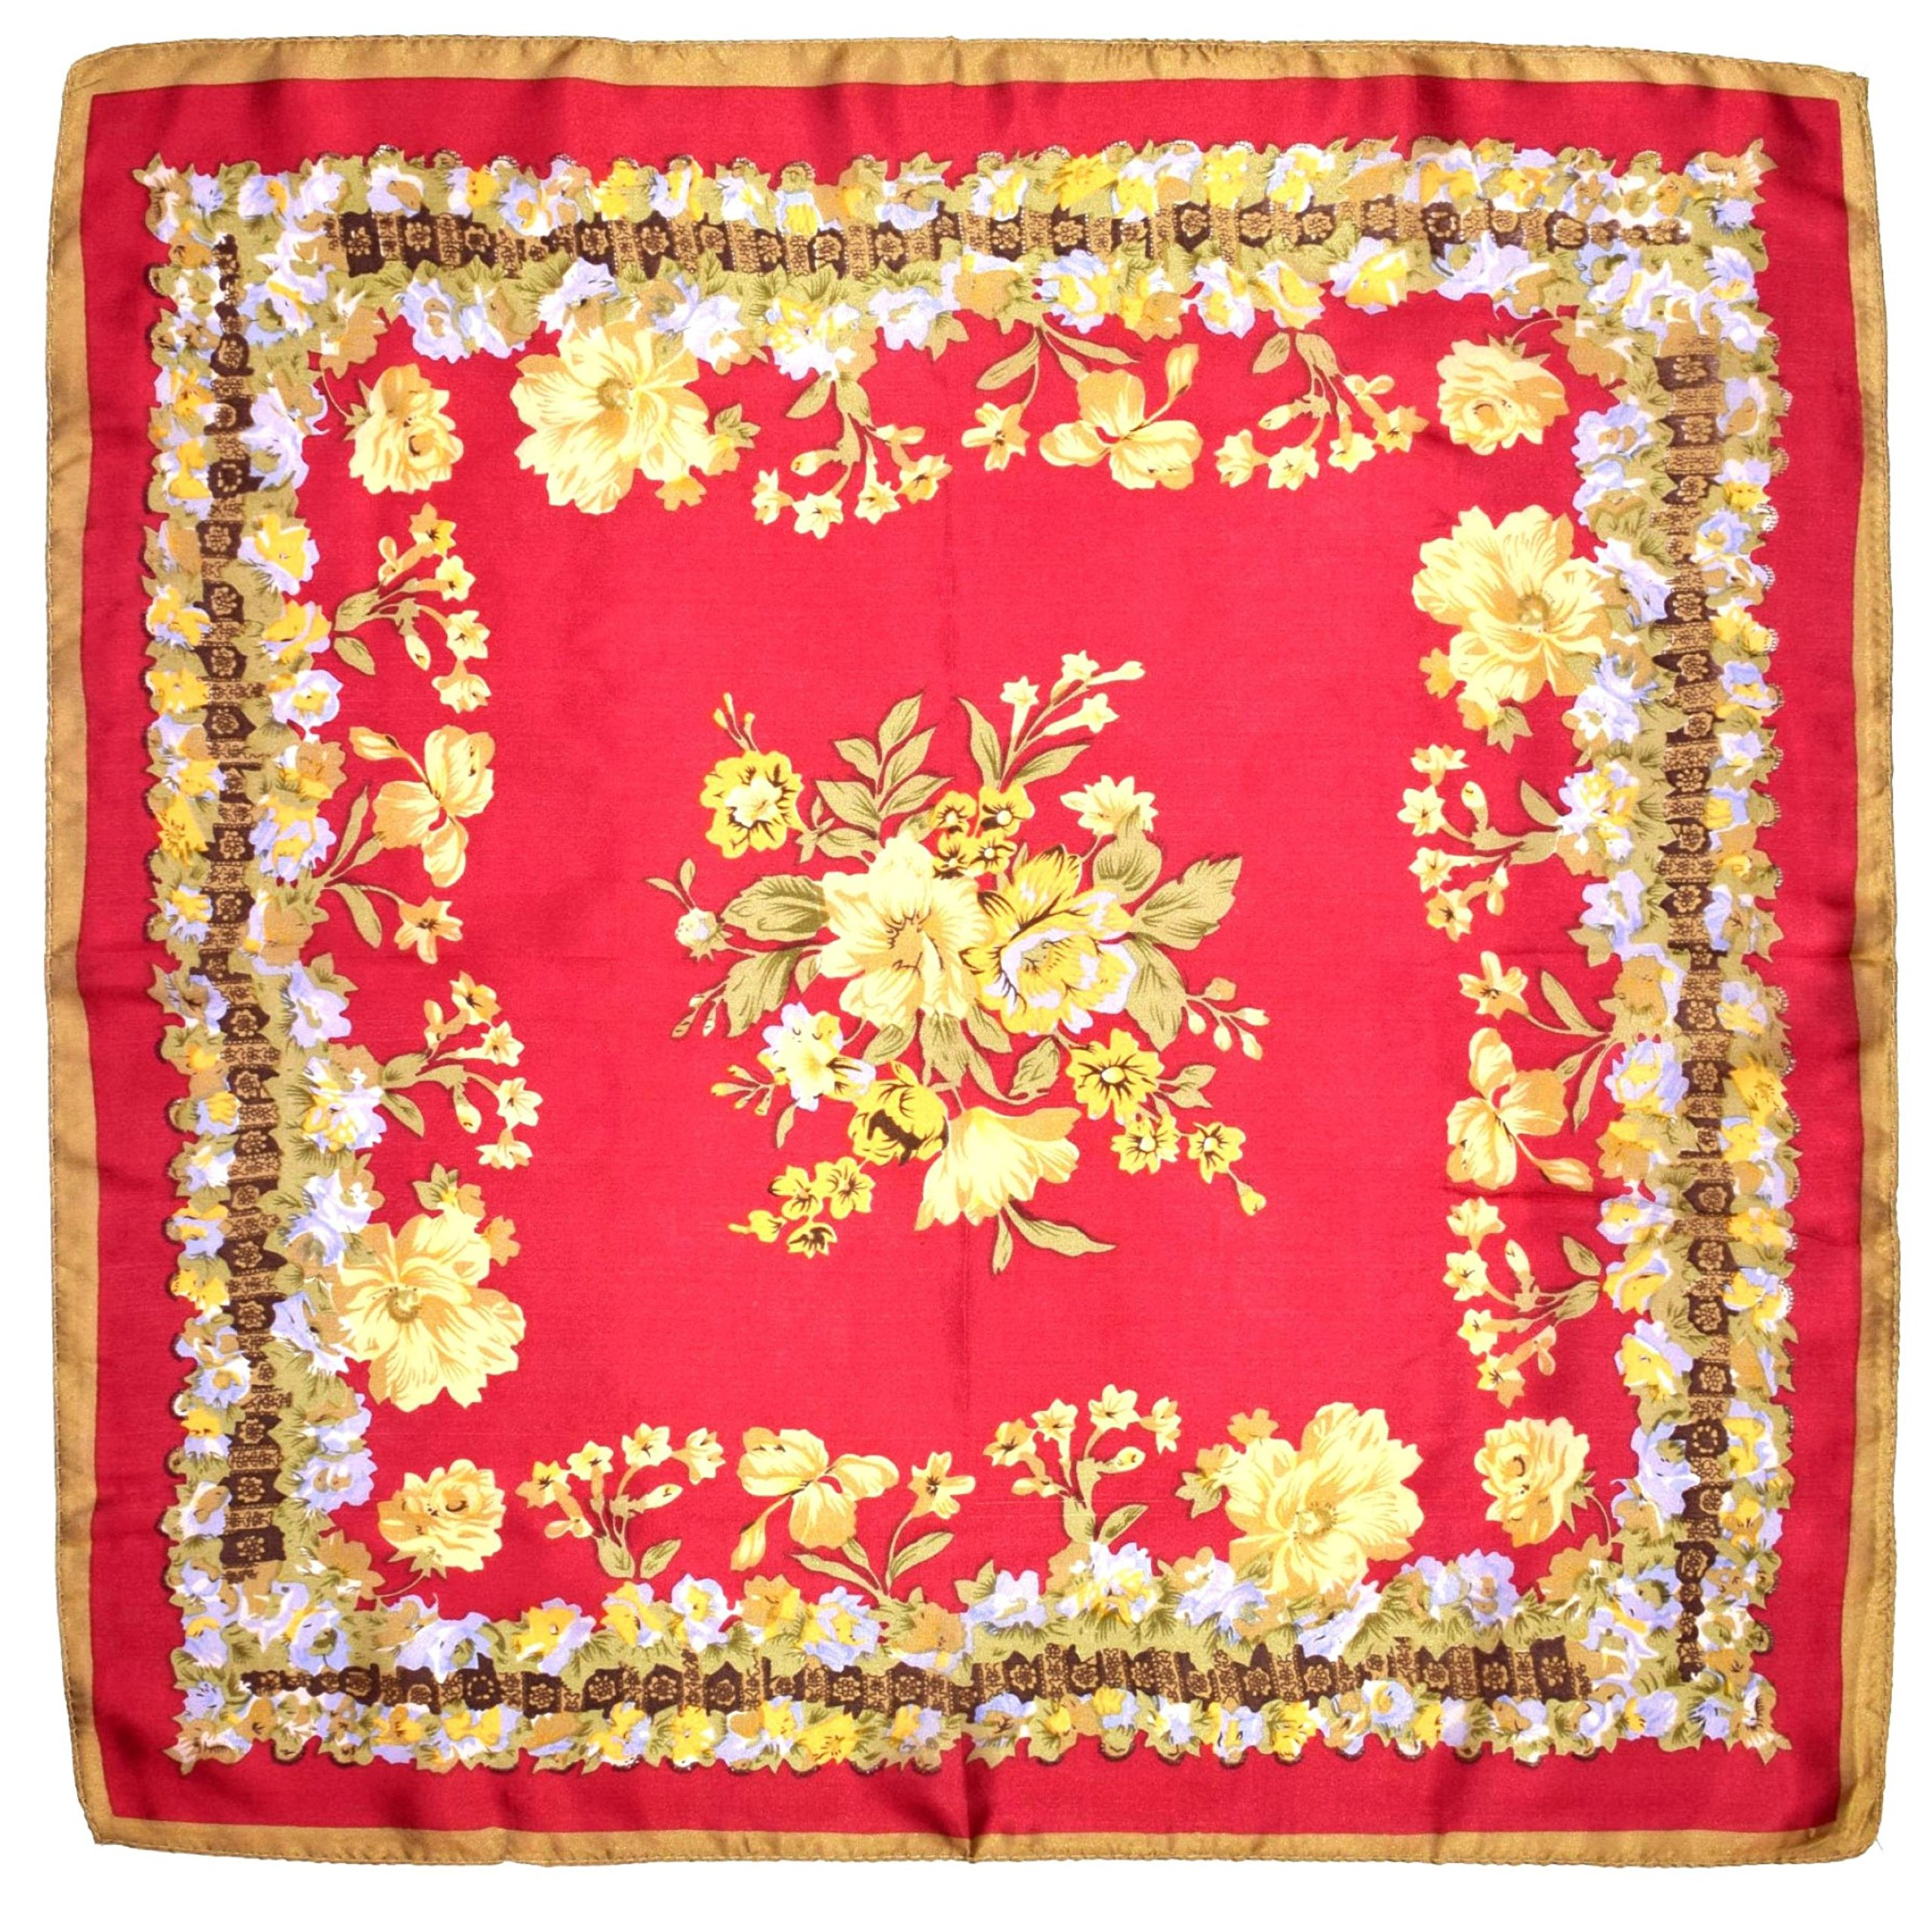 Red Yellow Flowers Printed Small Square Fine Silk Scarf by Bees Knees Fashion (Image #2)